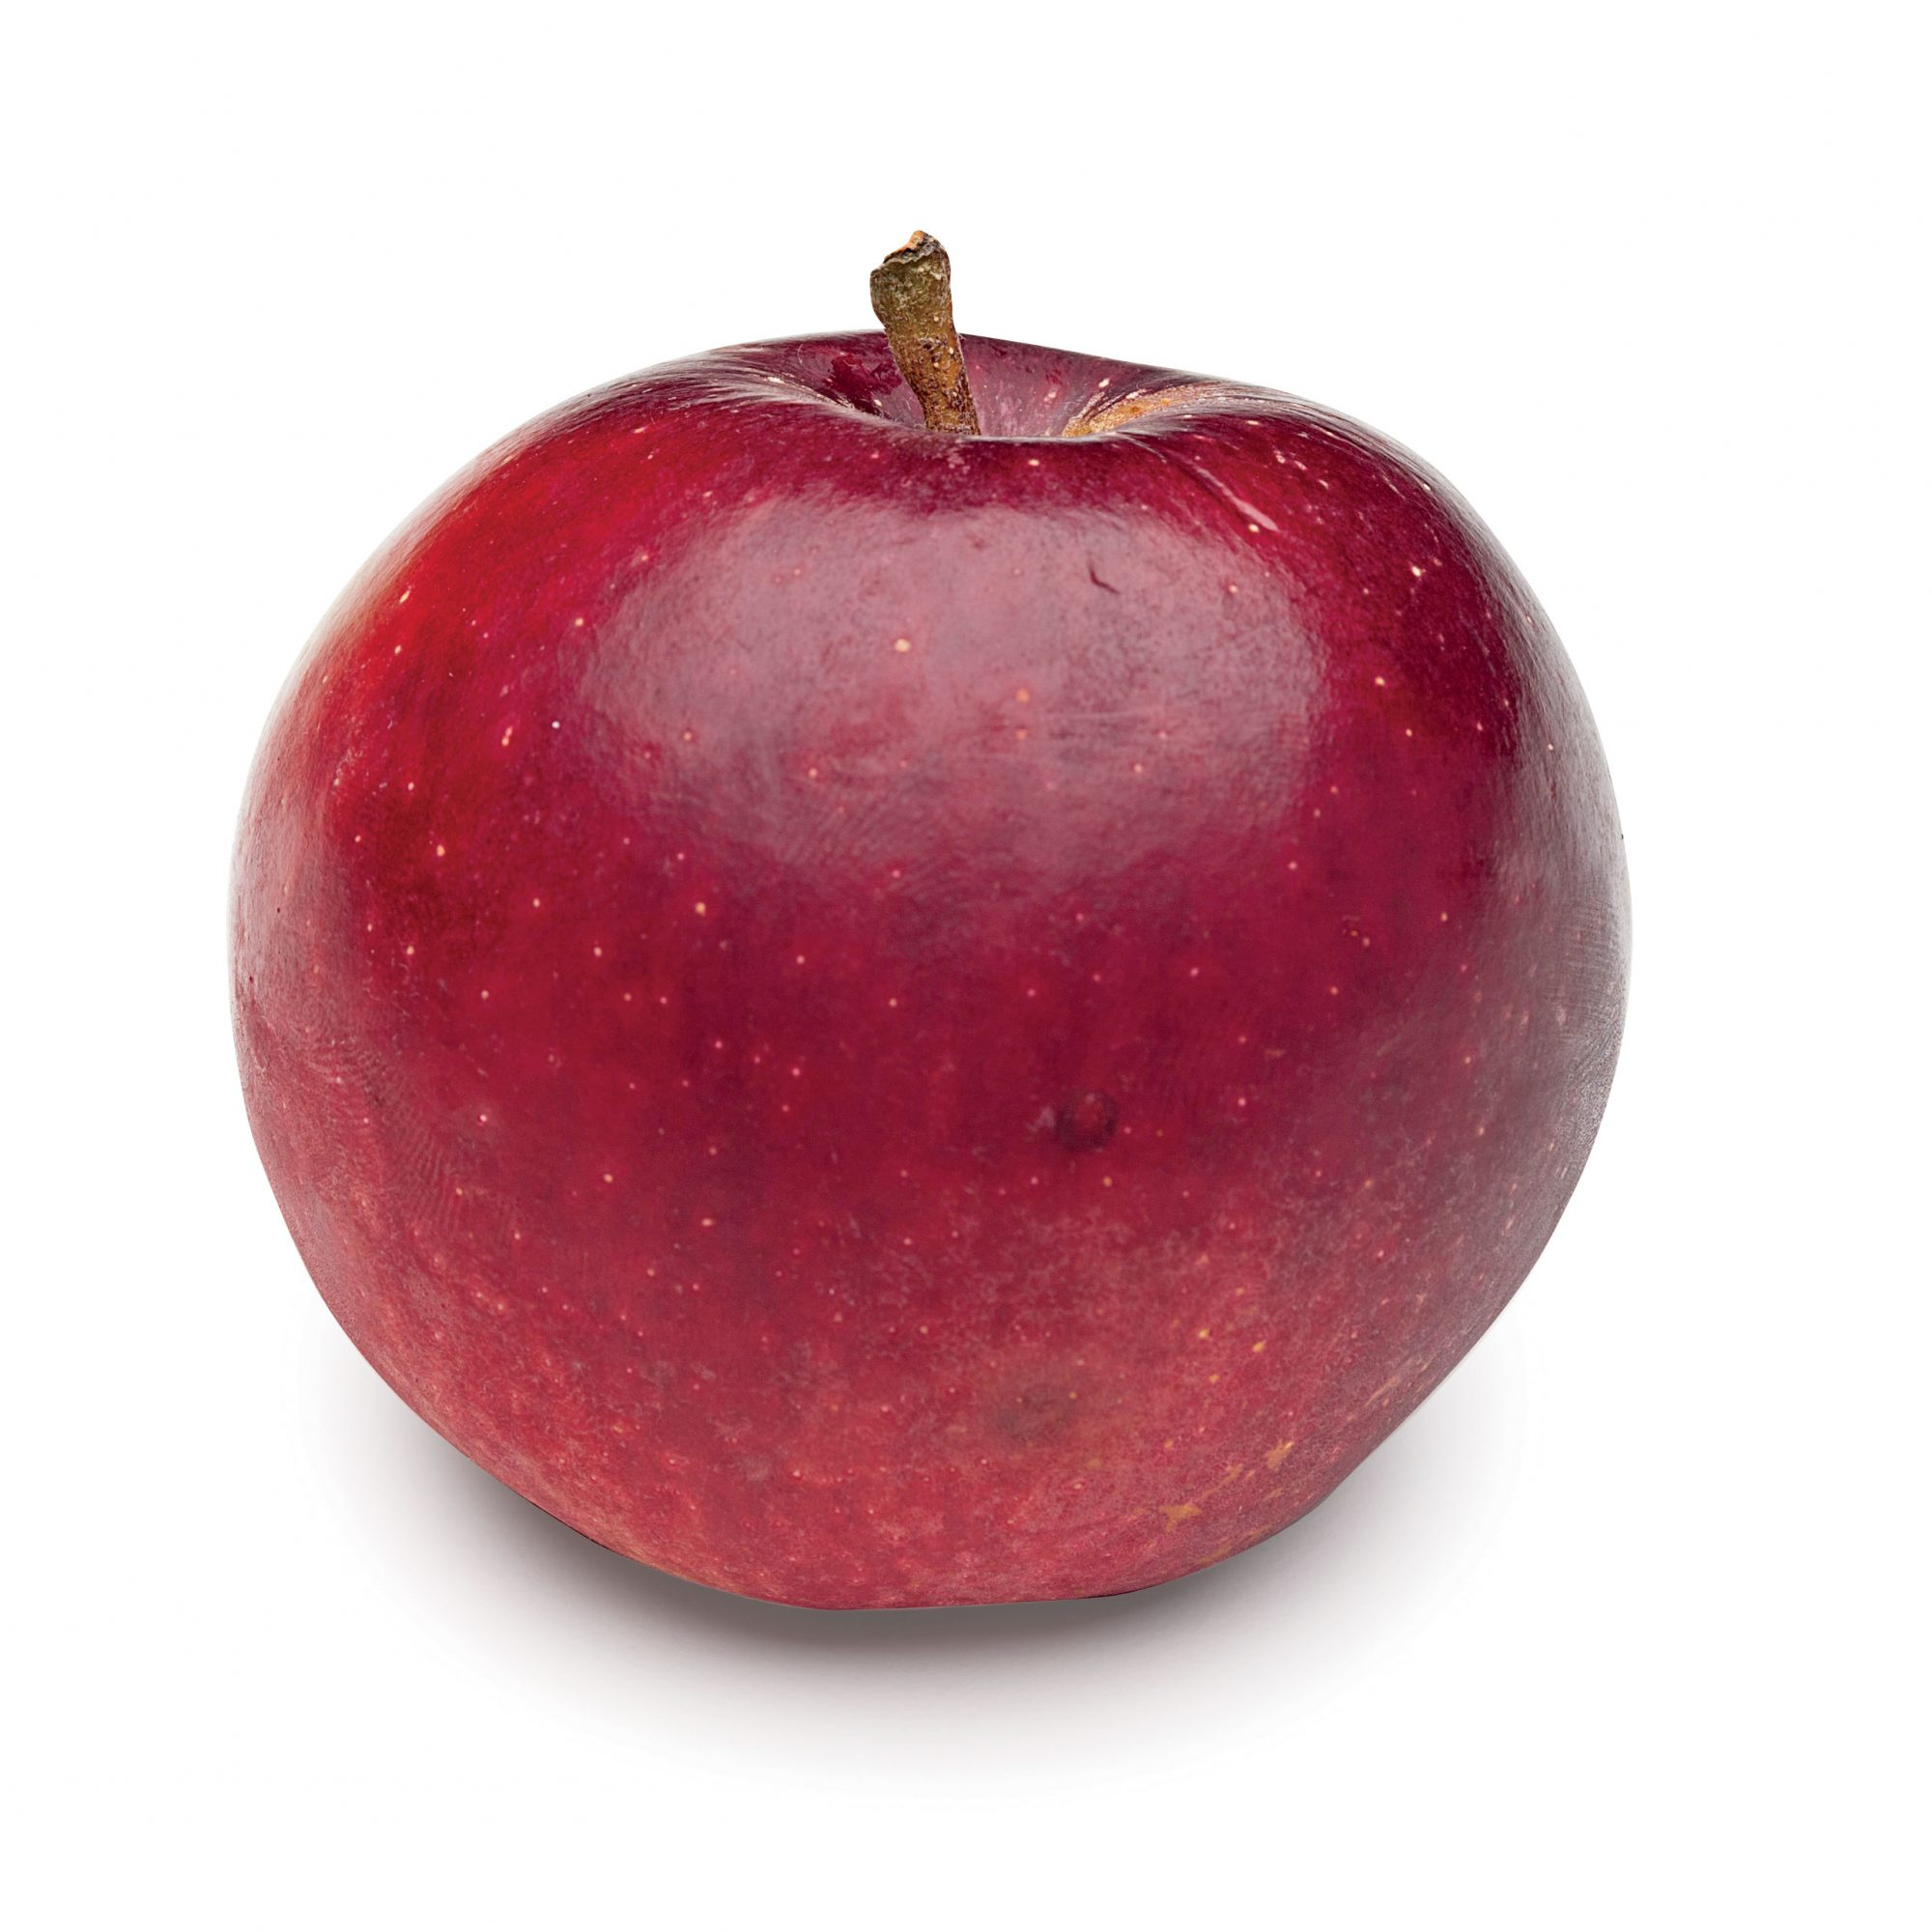 Arkansas Black Apple